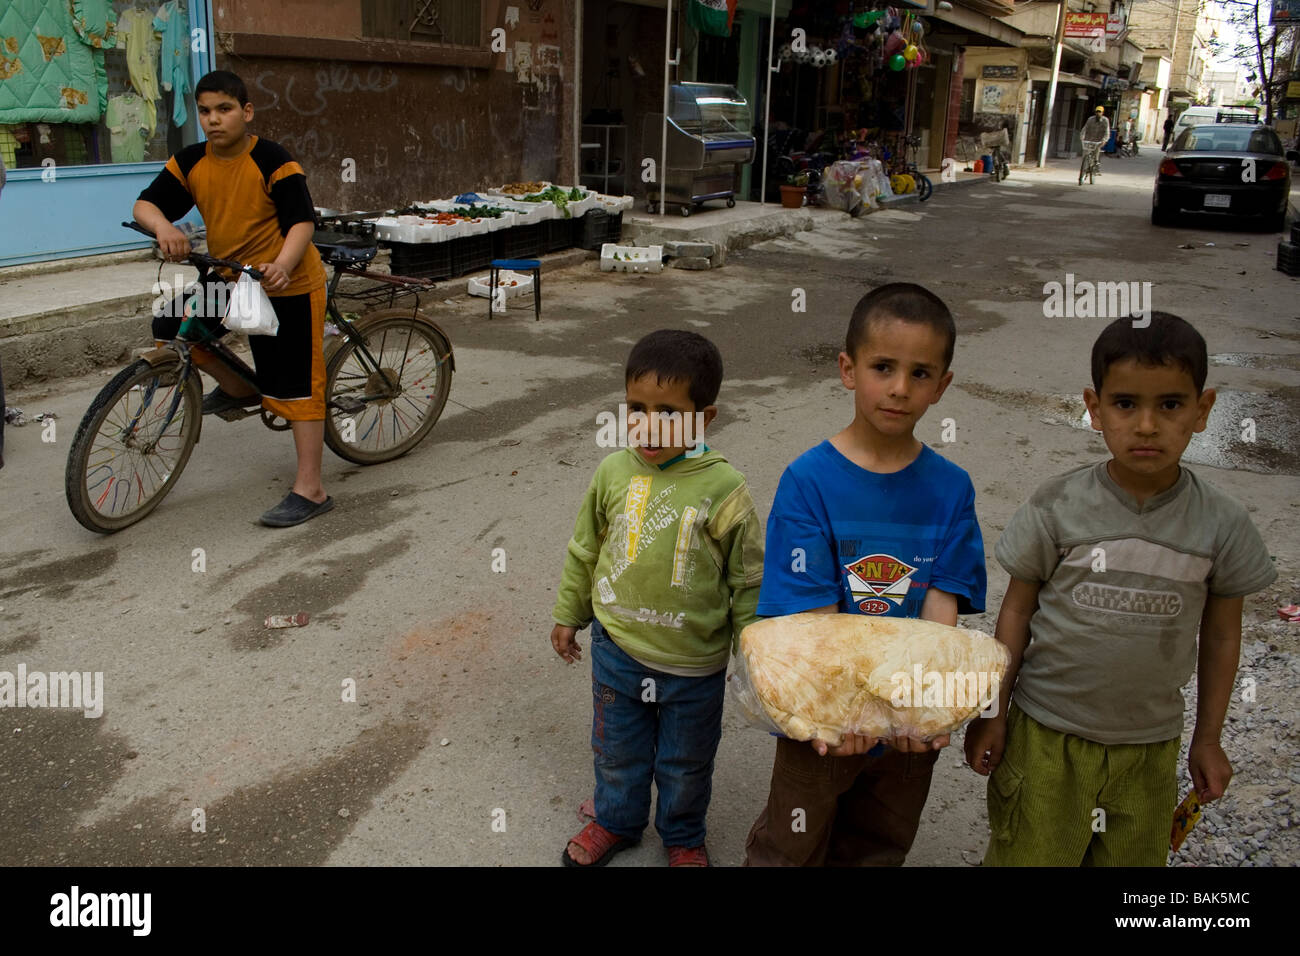 Children in Homs Palestinian refugee camp, Syria - Stock Image